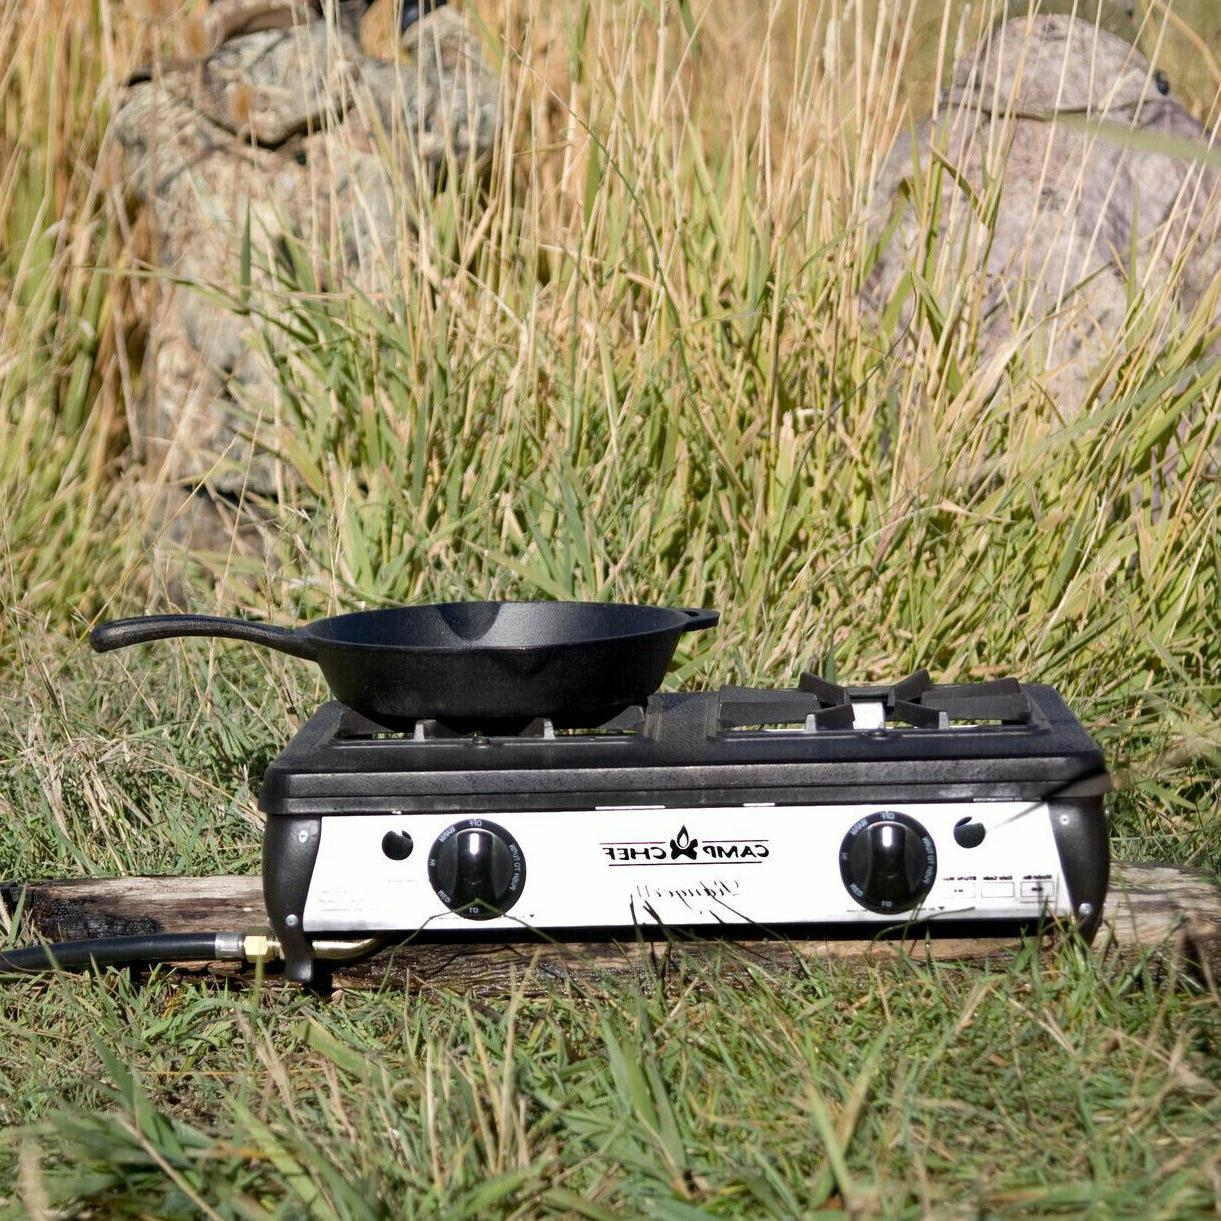 Camping Propane Outdoor Cooking Double